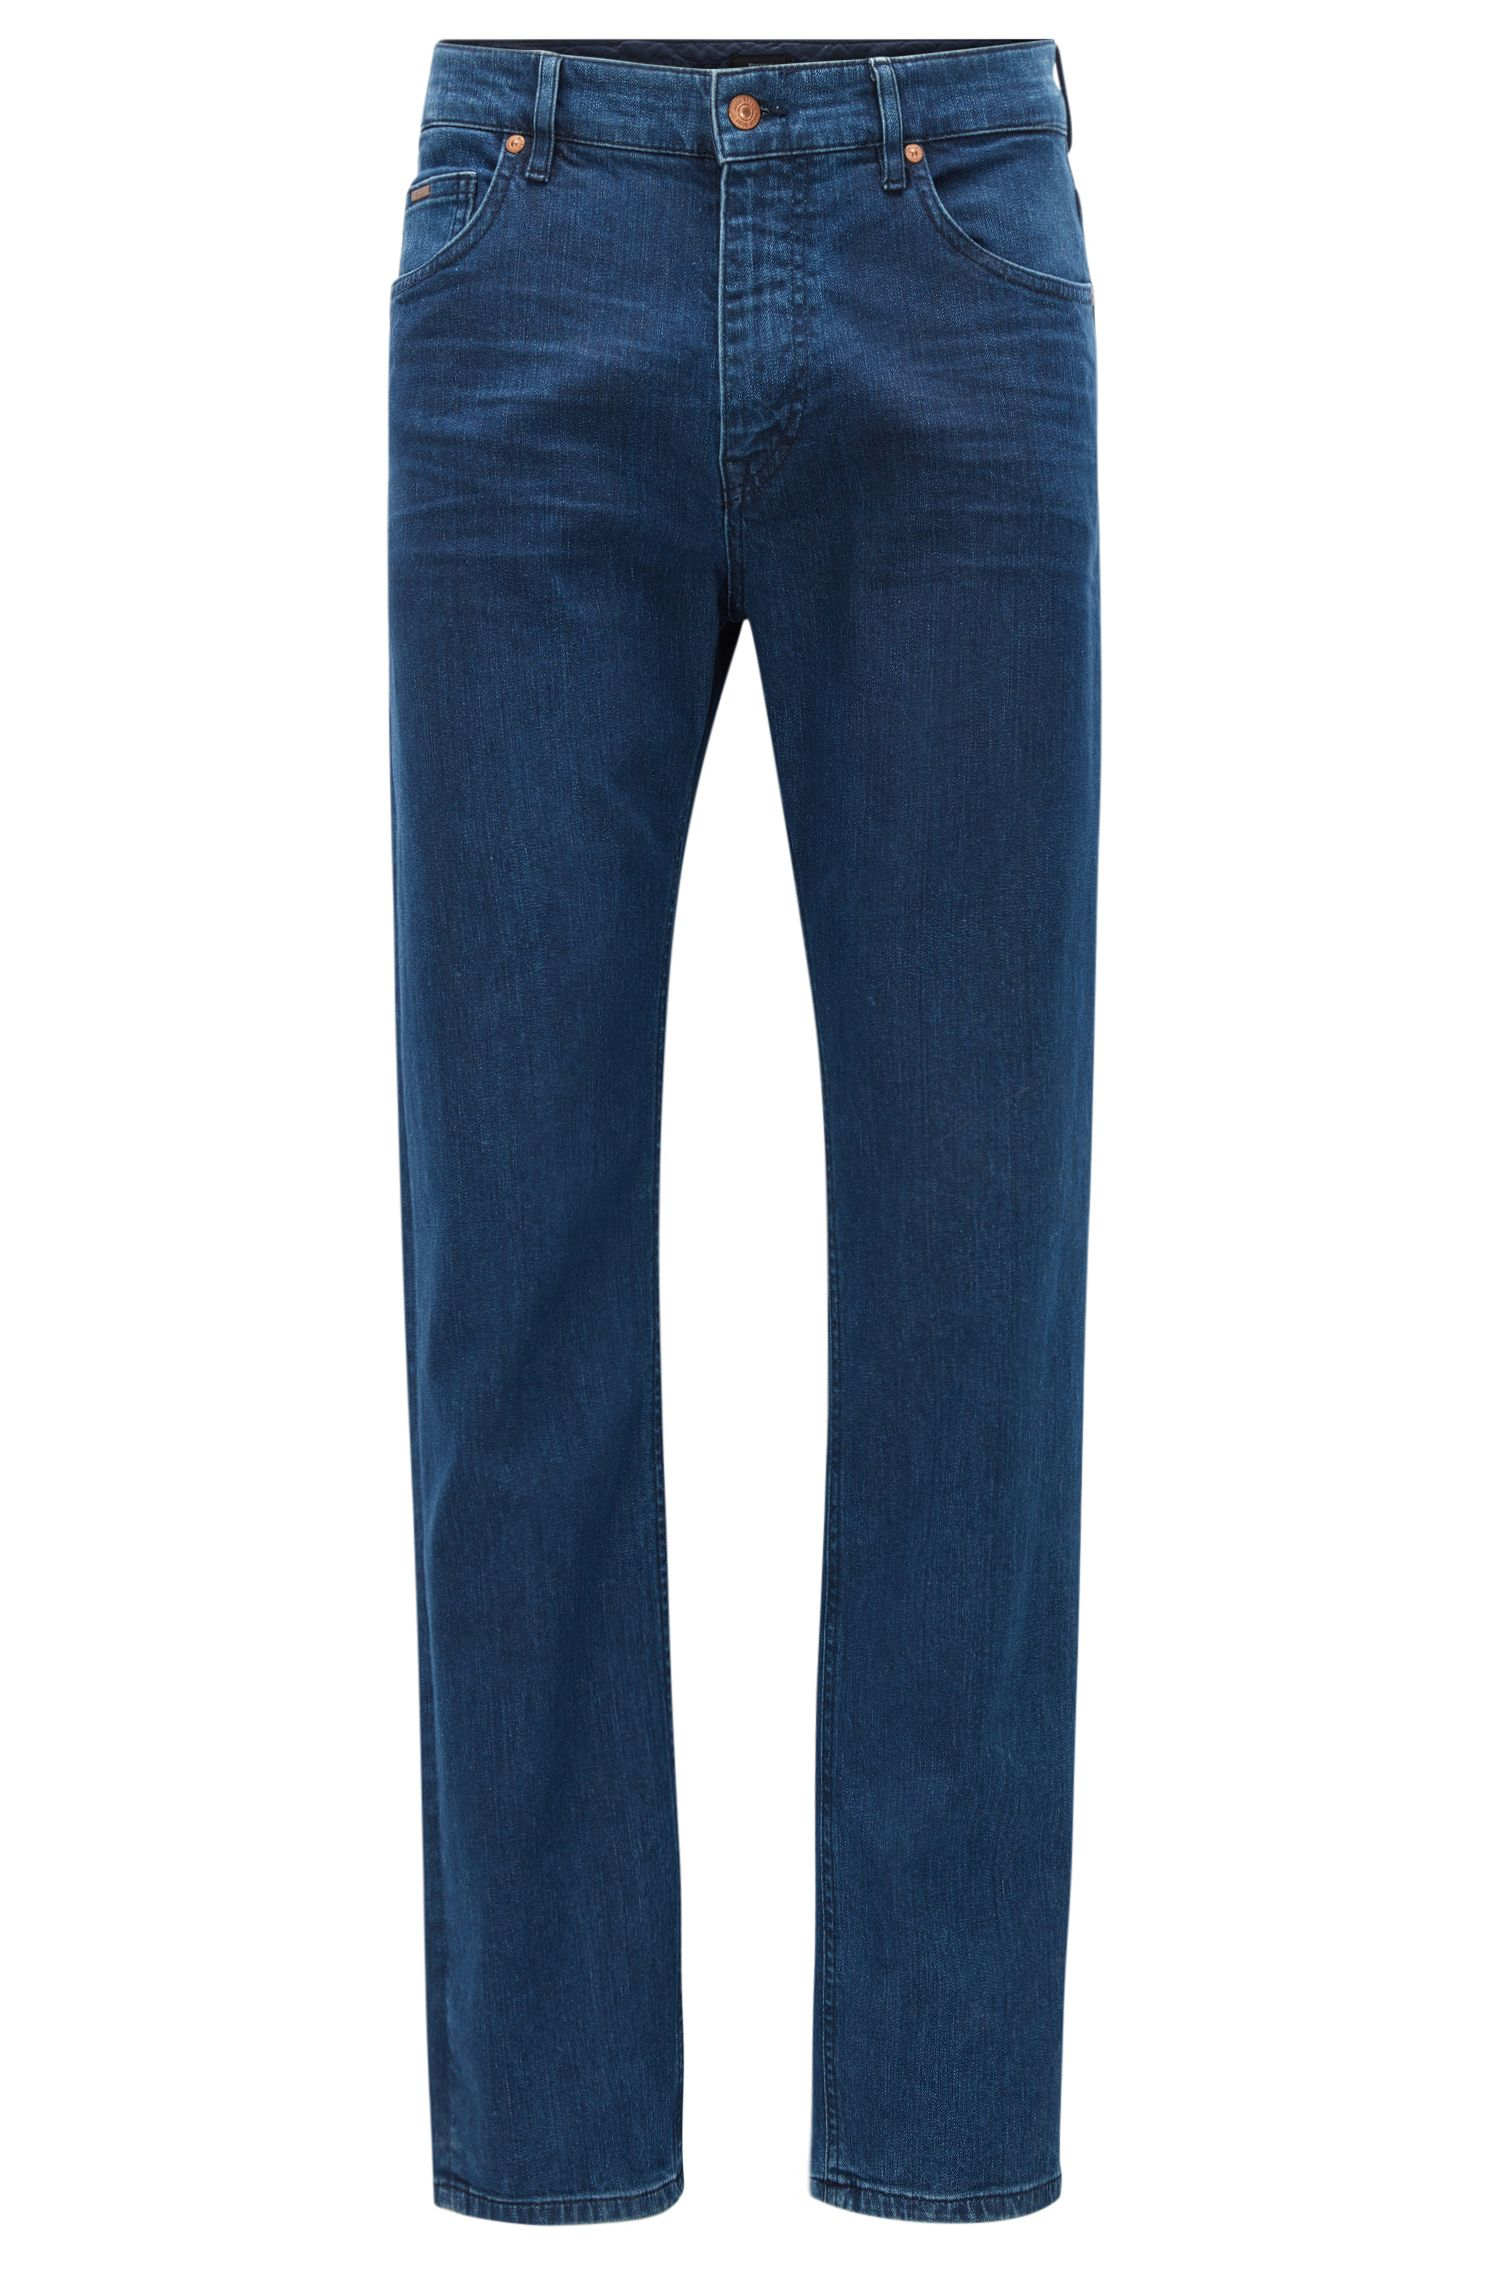 Jeans relaxed fit indaco scuro in denim elasticizzato slavato